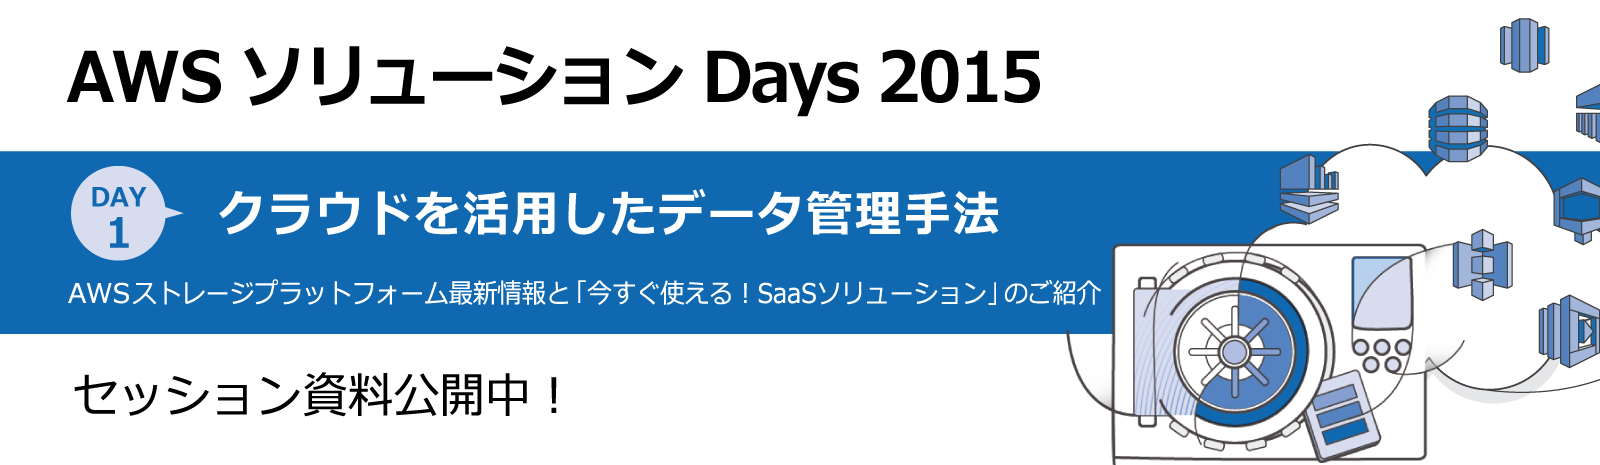 main_solitiondays_2015_day1_session